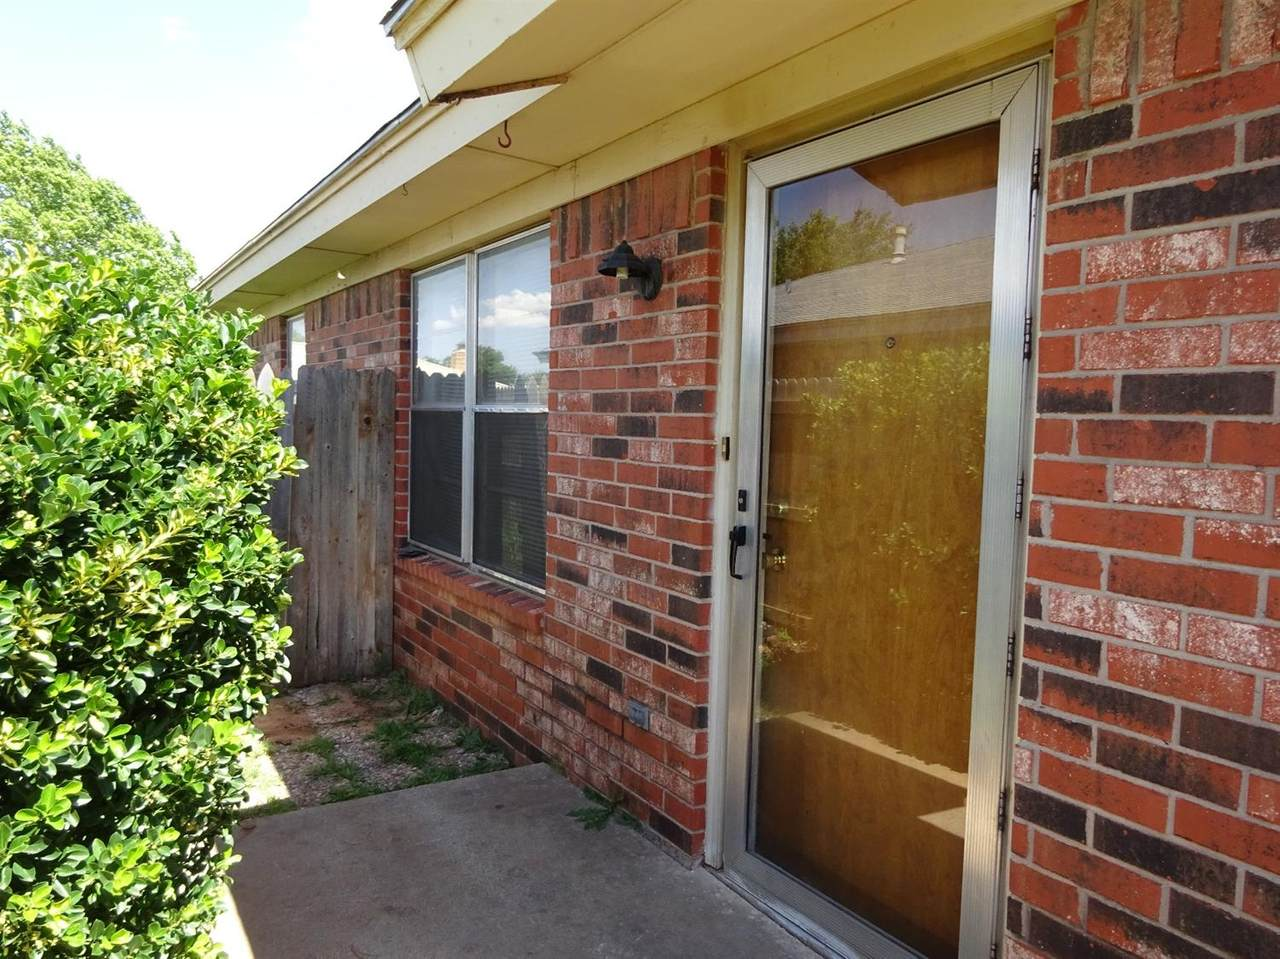 7507-A Ave W - Photo 1